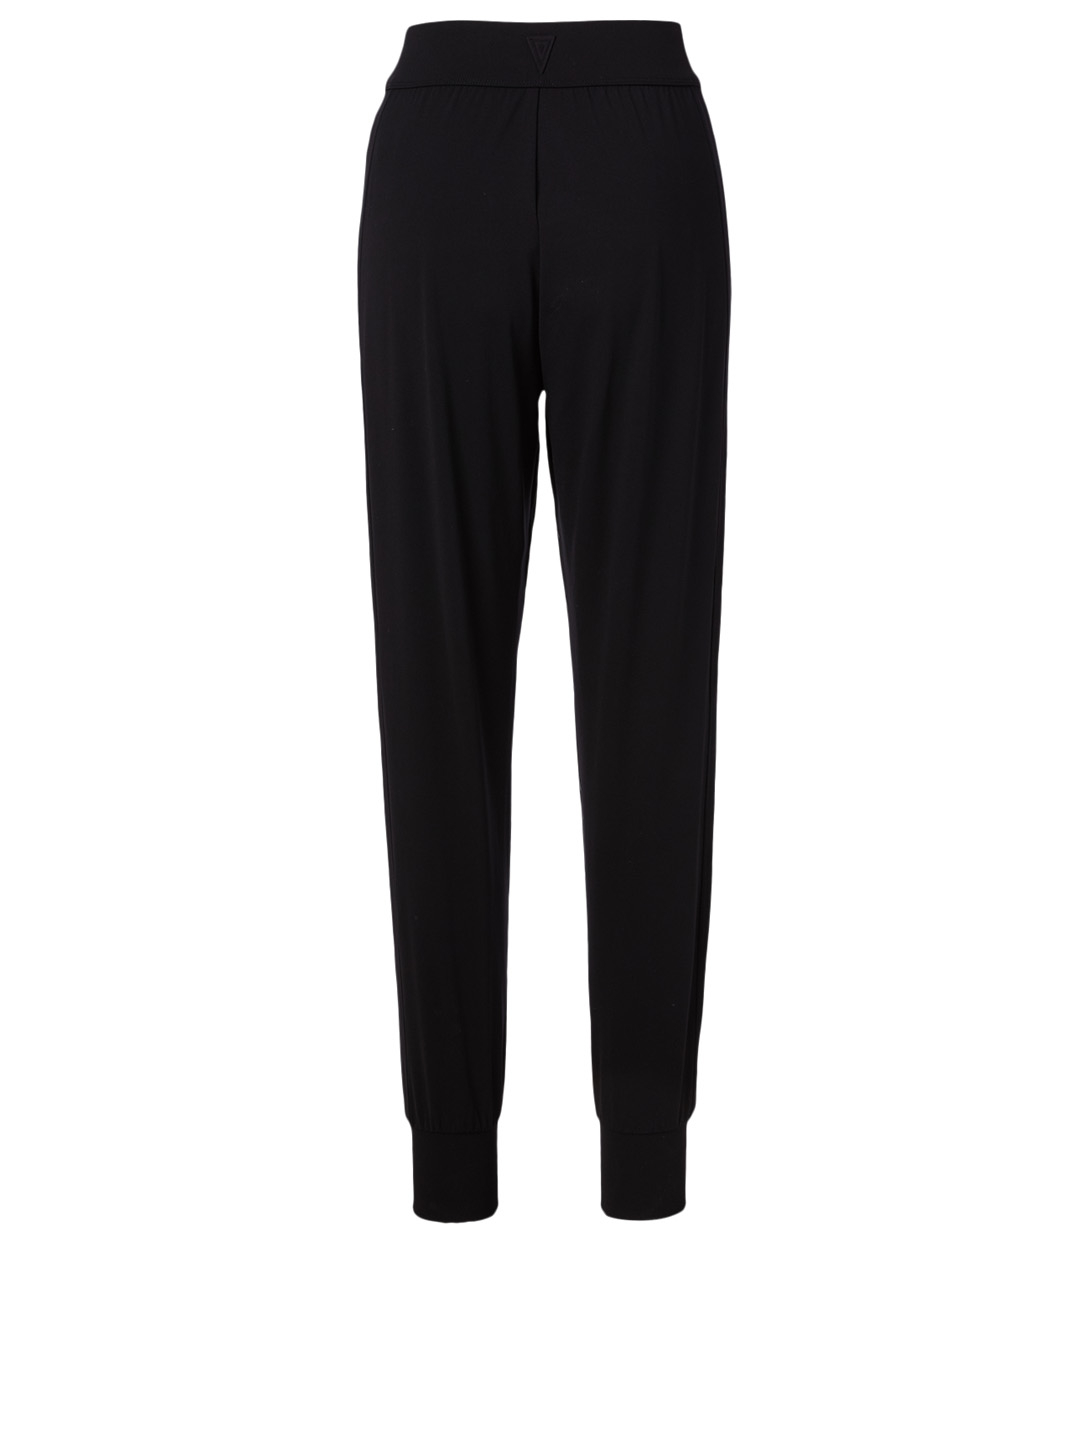 NO KA'OI Gentle Jogger Pants Women's Black